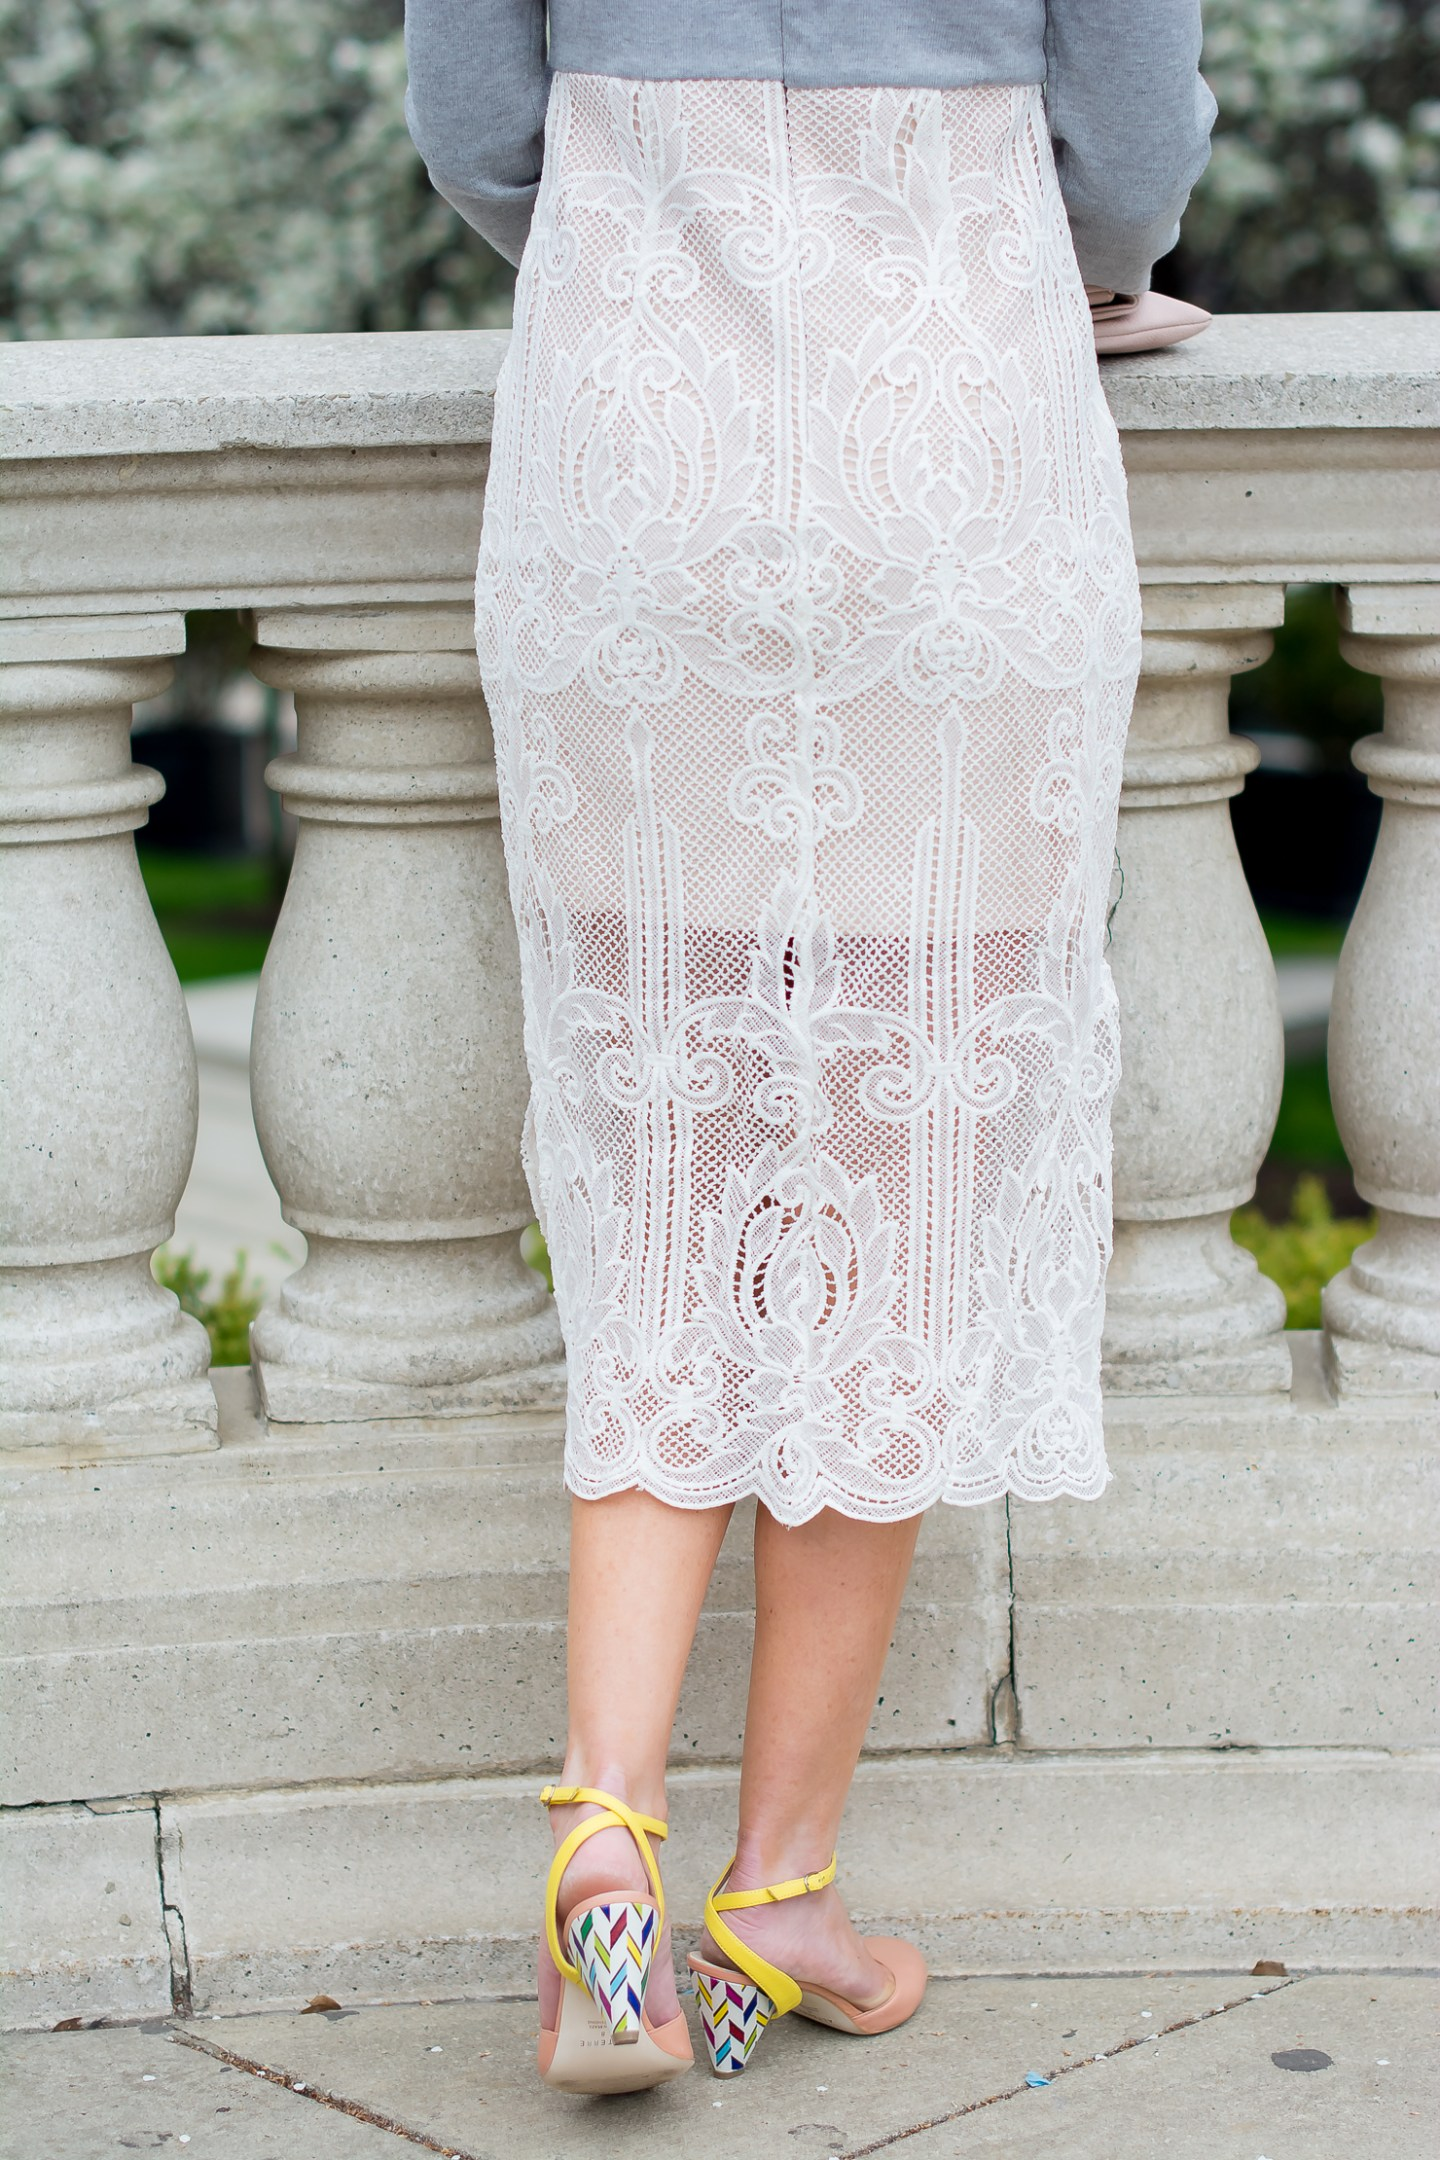 alterre-customizable-shoes-endless-rose-lace-sweater-dress